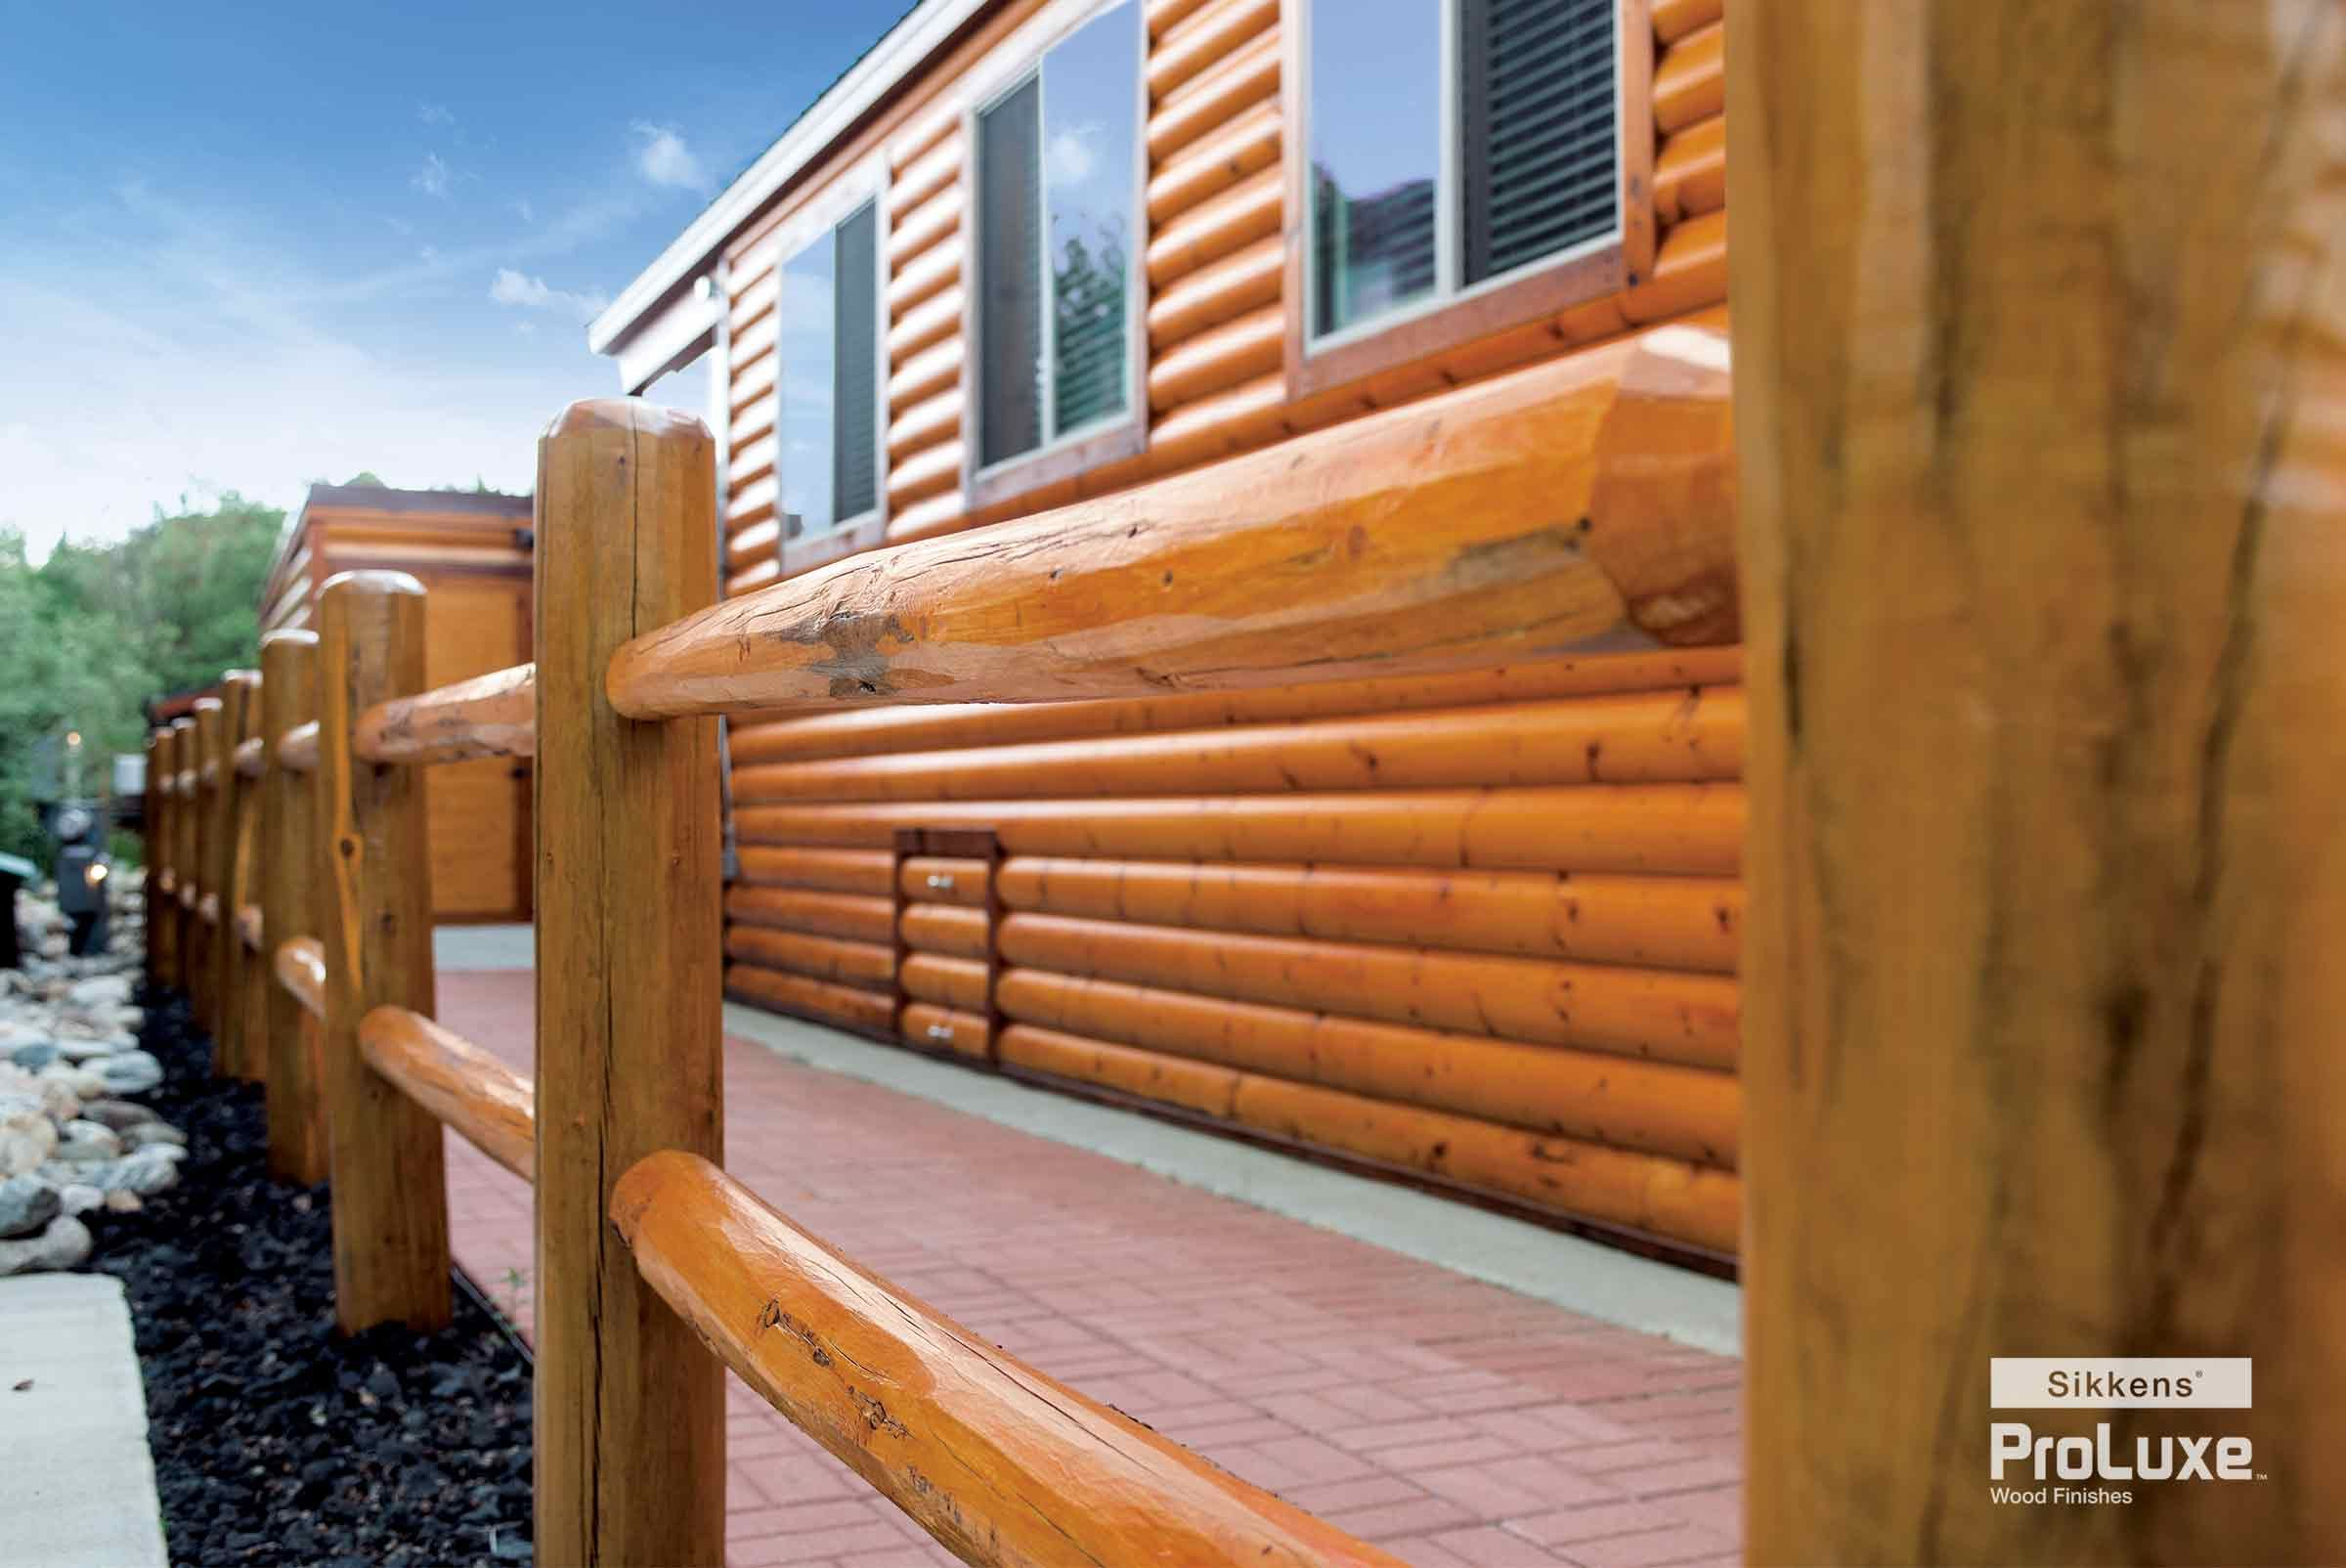 Sikkens Proluxe Cetol Log Siding In Natural Brings Out The Inherent Radiance Of The Knotty Pine Used On This Farm S Staining Wood Resort Cabins Log Siding